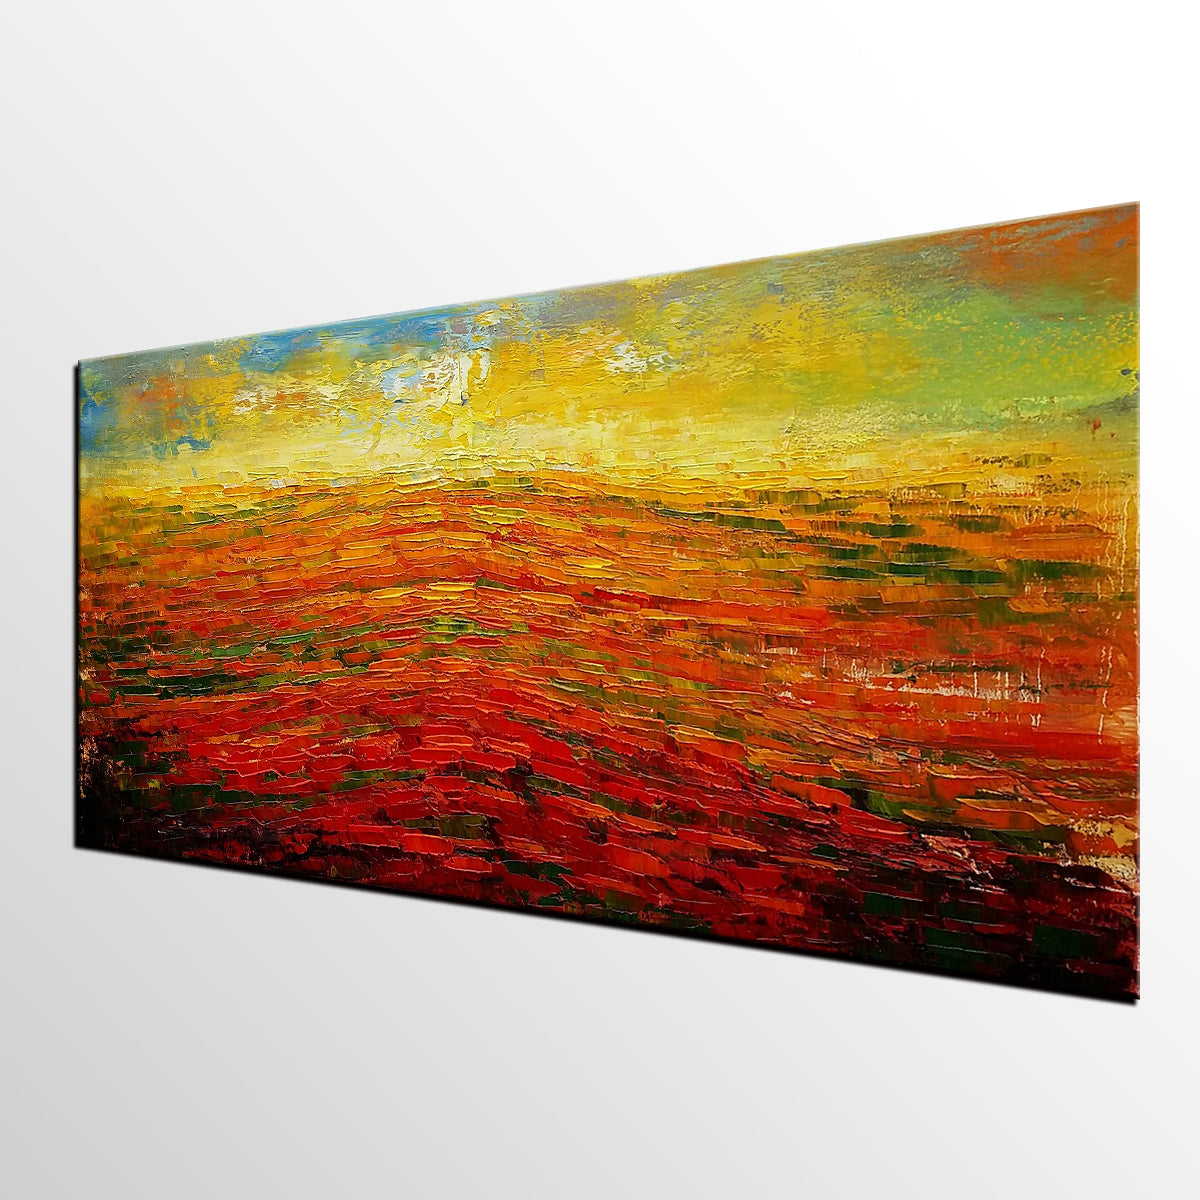 Large Painting, Abstract Wall Art, Abstract Landscape Painting, Large Art, Canvas Art, Wall Art, Original Oil Painting, 337